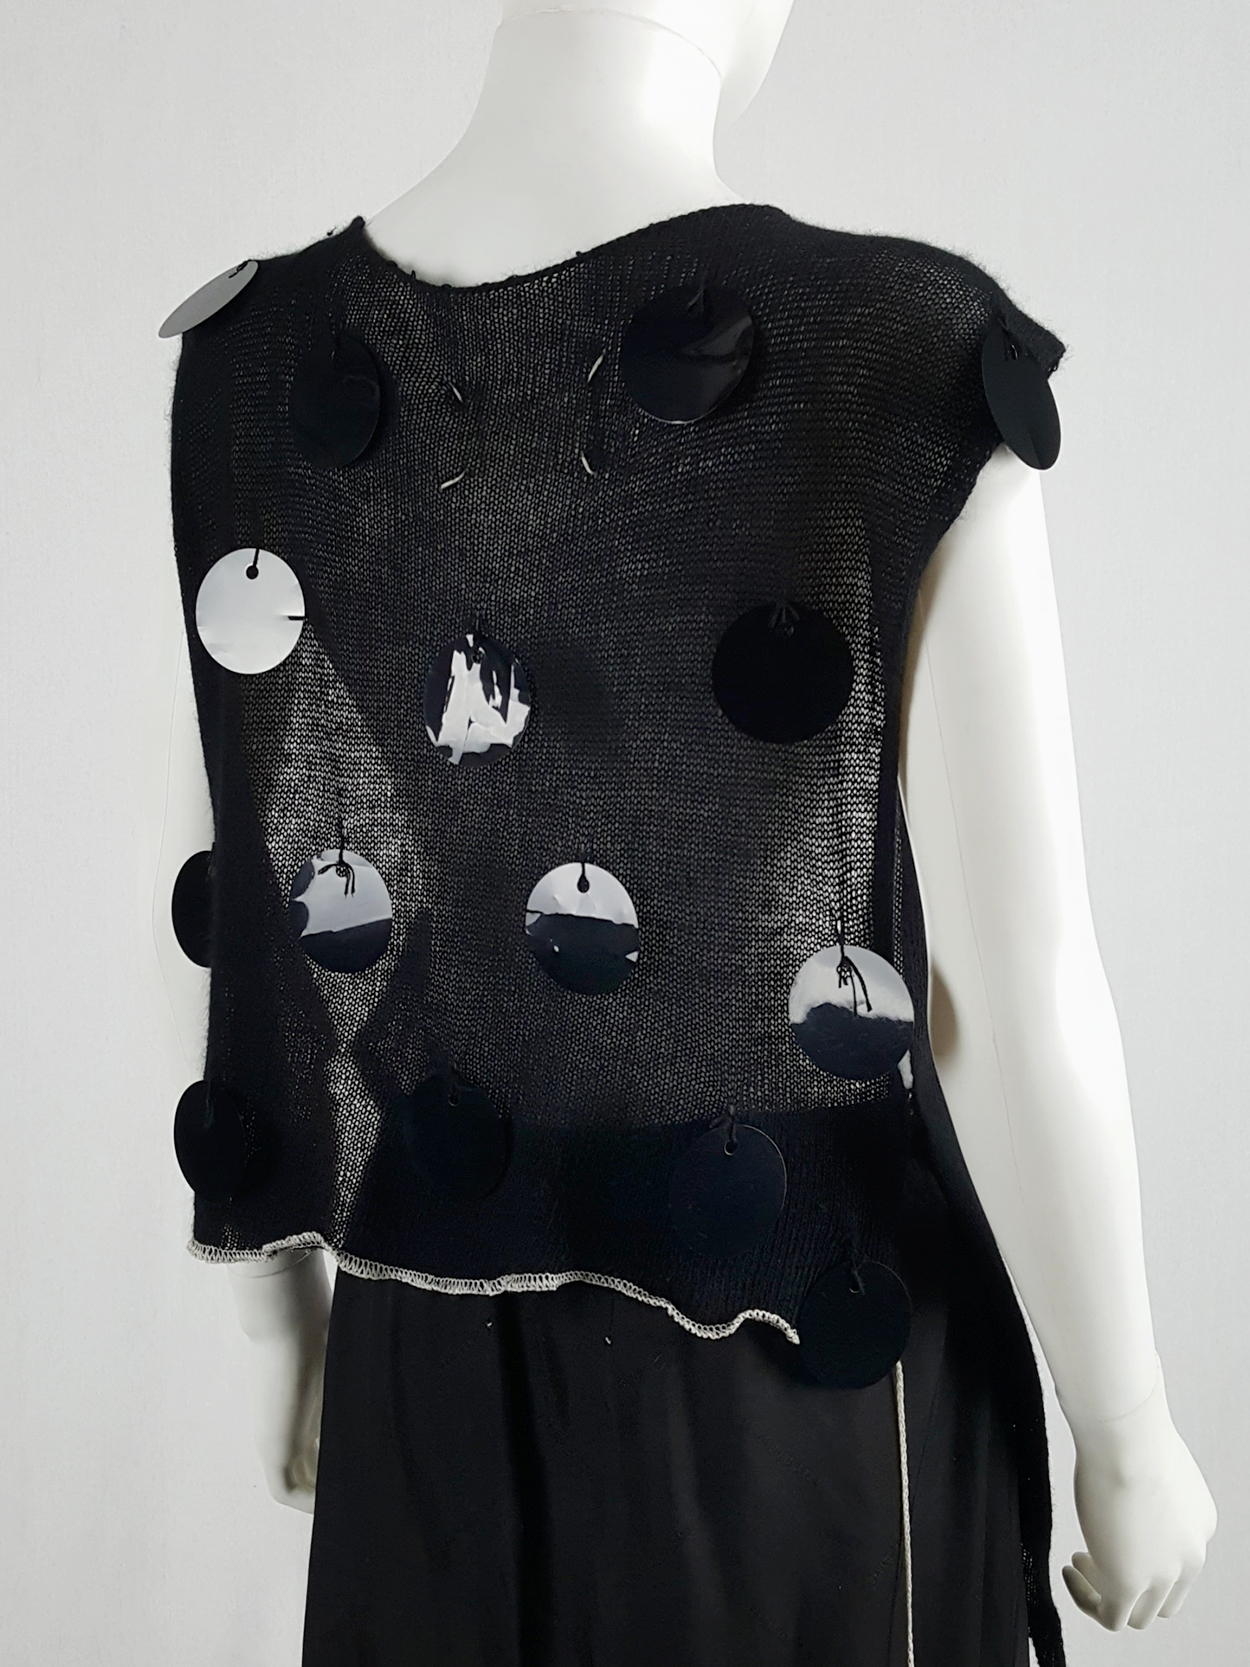 Maison Martin Margiela black knit top with oversized sequins — fall 2000